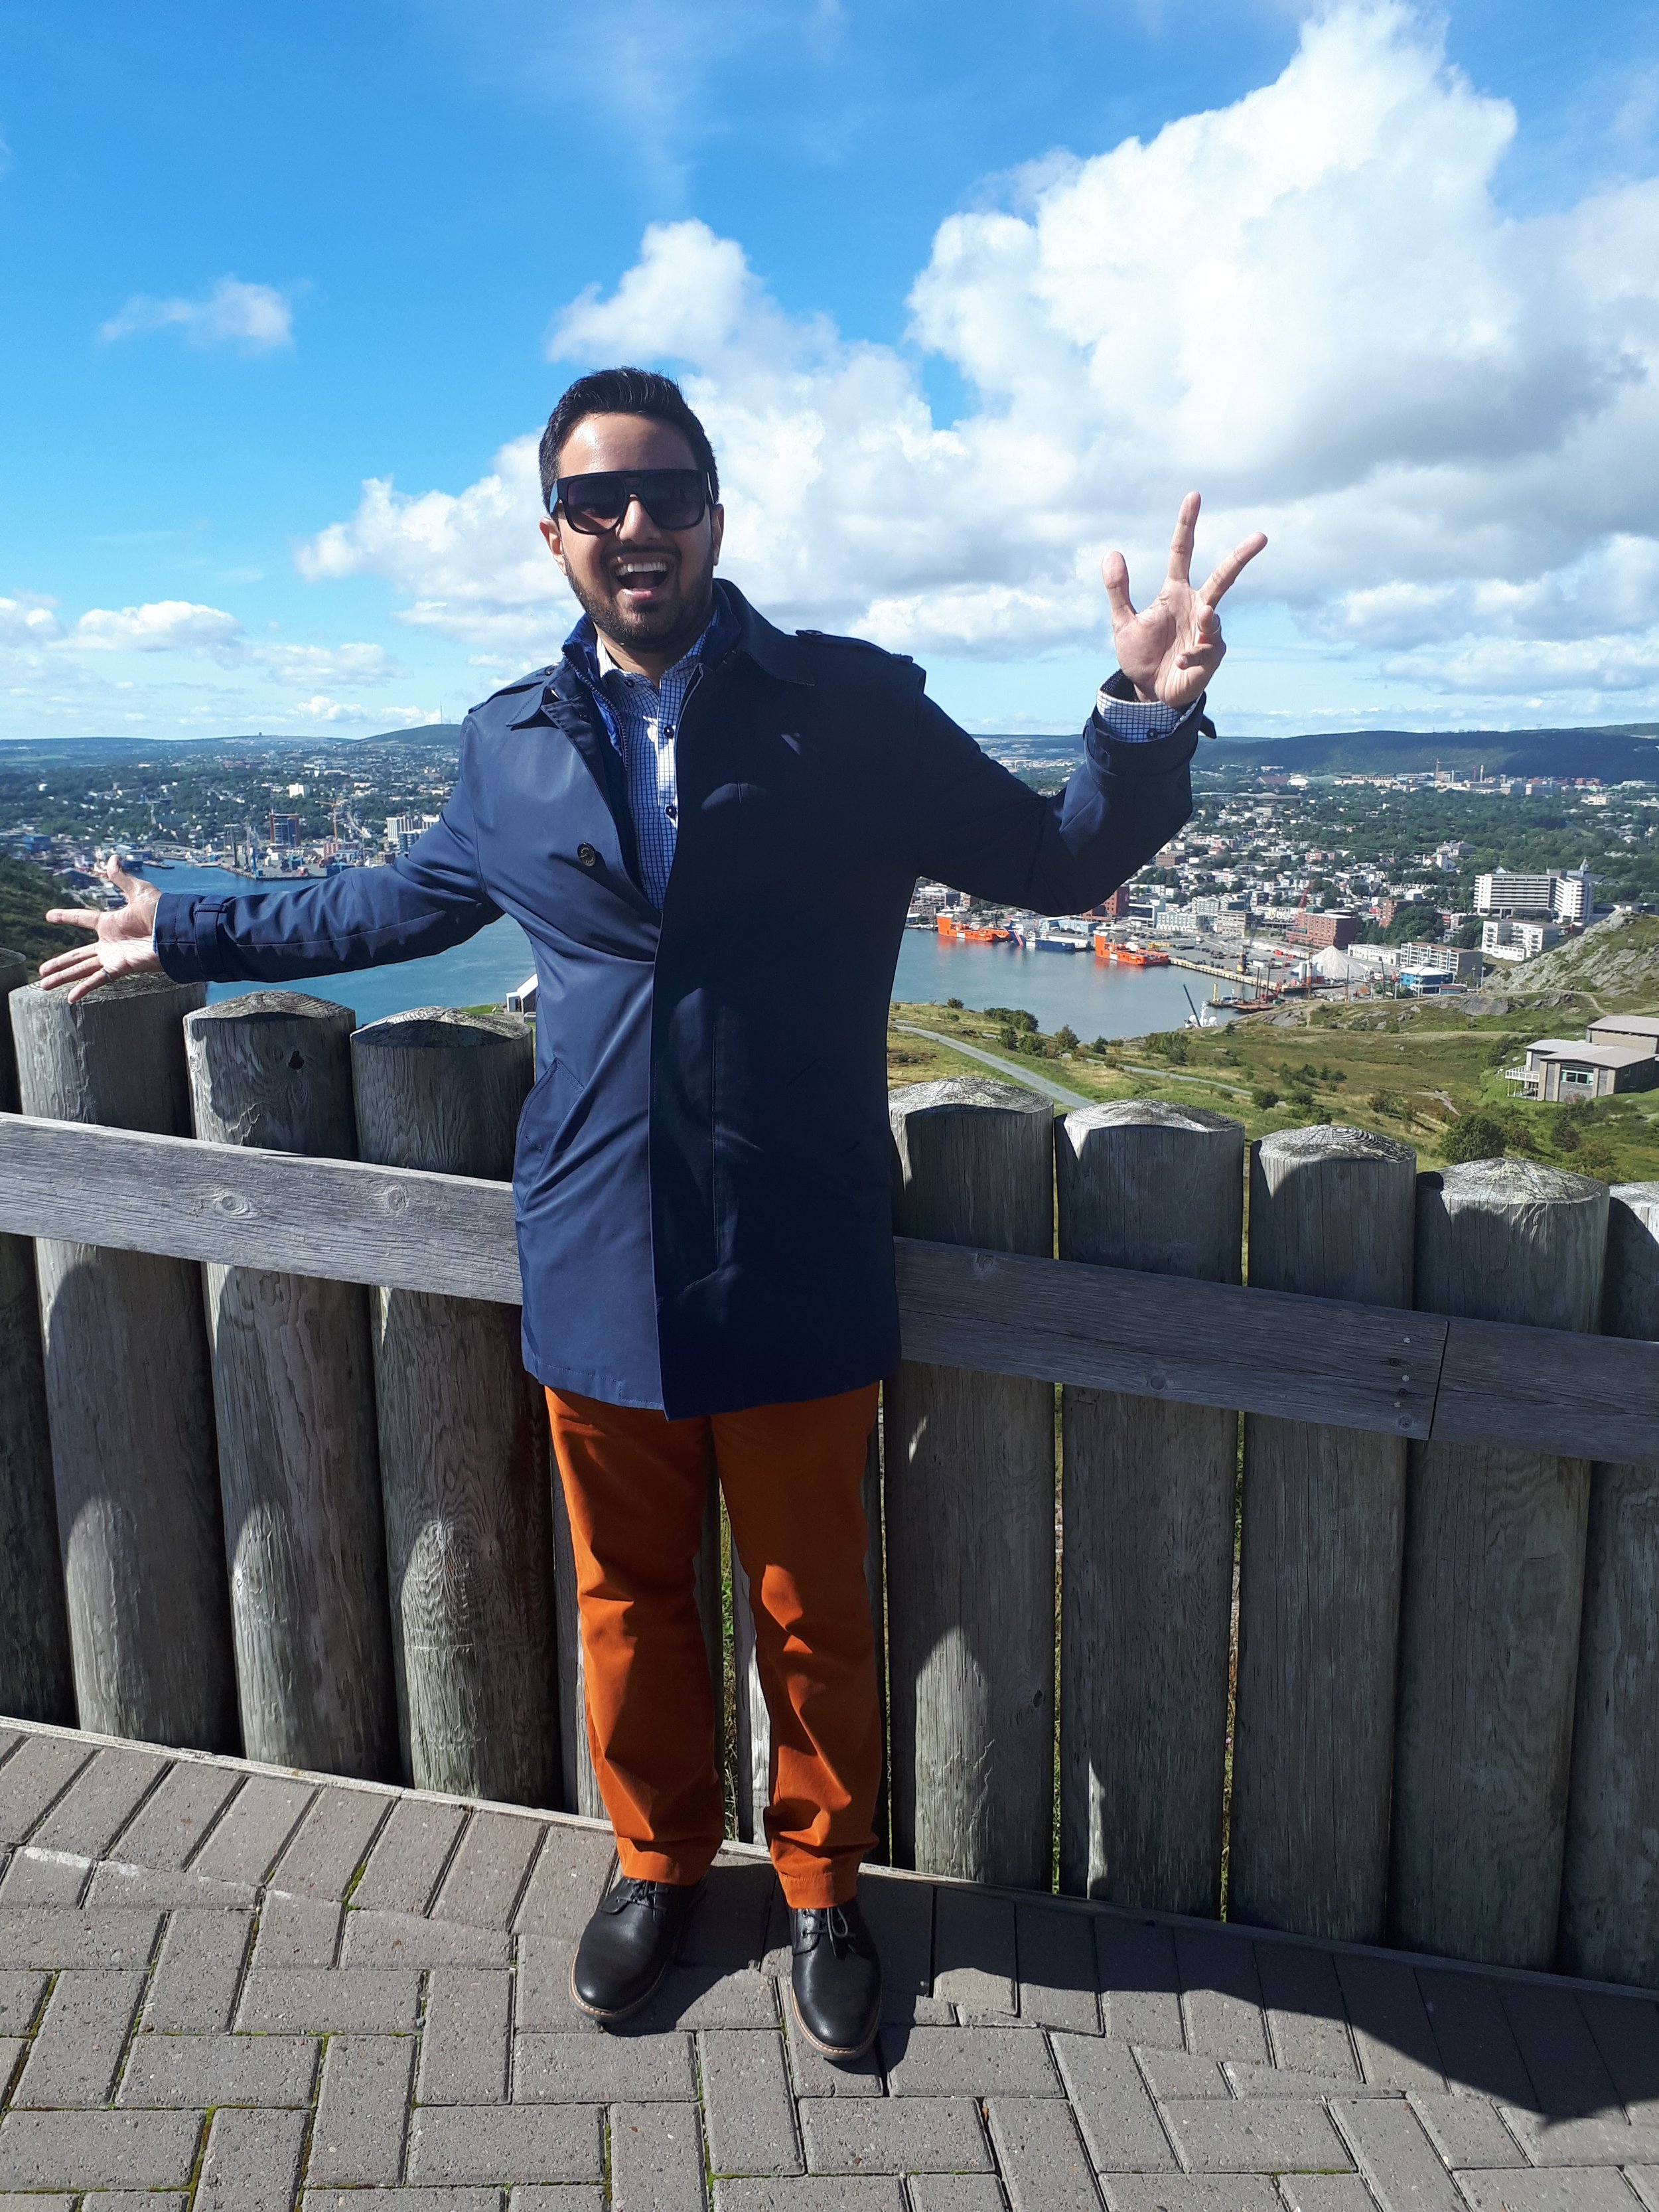 "Synopsis - Aatif Baskanderi grew up in a place where not many people looked like him or believed in the same things that he did. As a Muslim child of Pakistani immigrants, Newfoundland became home. His experiences growing up on ""the rock"" was like something out of a storybook. On this cold, isolated island in the Atlantic ocean, Aatif learned sincerity and appreciation for others that would set him up for remarkable success in life. As an engineer with a keen interest for social justice, he embarked on a journey to connect the two. Guided by his Muslim & Newfoundlander values, this led him to studying at the London School of Economics, researching Fair Trade farmers in Palestine, working on malaria prevention in Sierra Leone, informing science policy in Canada, the UK & Europe, leading Engineers Without Borders across Canada, and currently working as an innovation specialist at a global power company in Calgary, Alberta.While things are going well for Aatif, the same cannot be said for his home province, which is facing tumultuous economic times. In hopes of inspiring a new generation of Newfoundlanders to live their dreams, Aatif returns to Newfoundland to share his story of pluralism and tolerance. At a time of increasing racial and religious friction across the west, Aatif's story is a reminder of what can happen when a community welcomes newcomers with open arms."